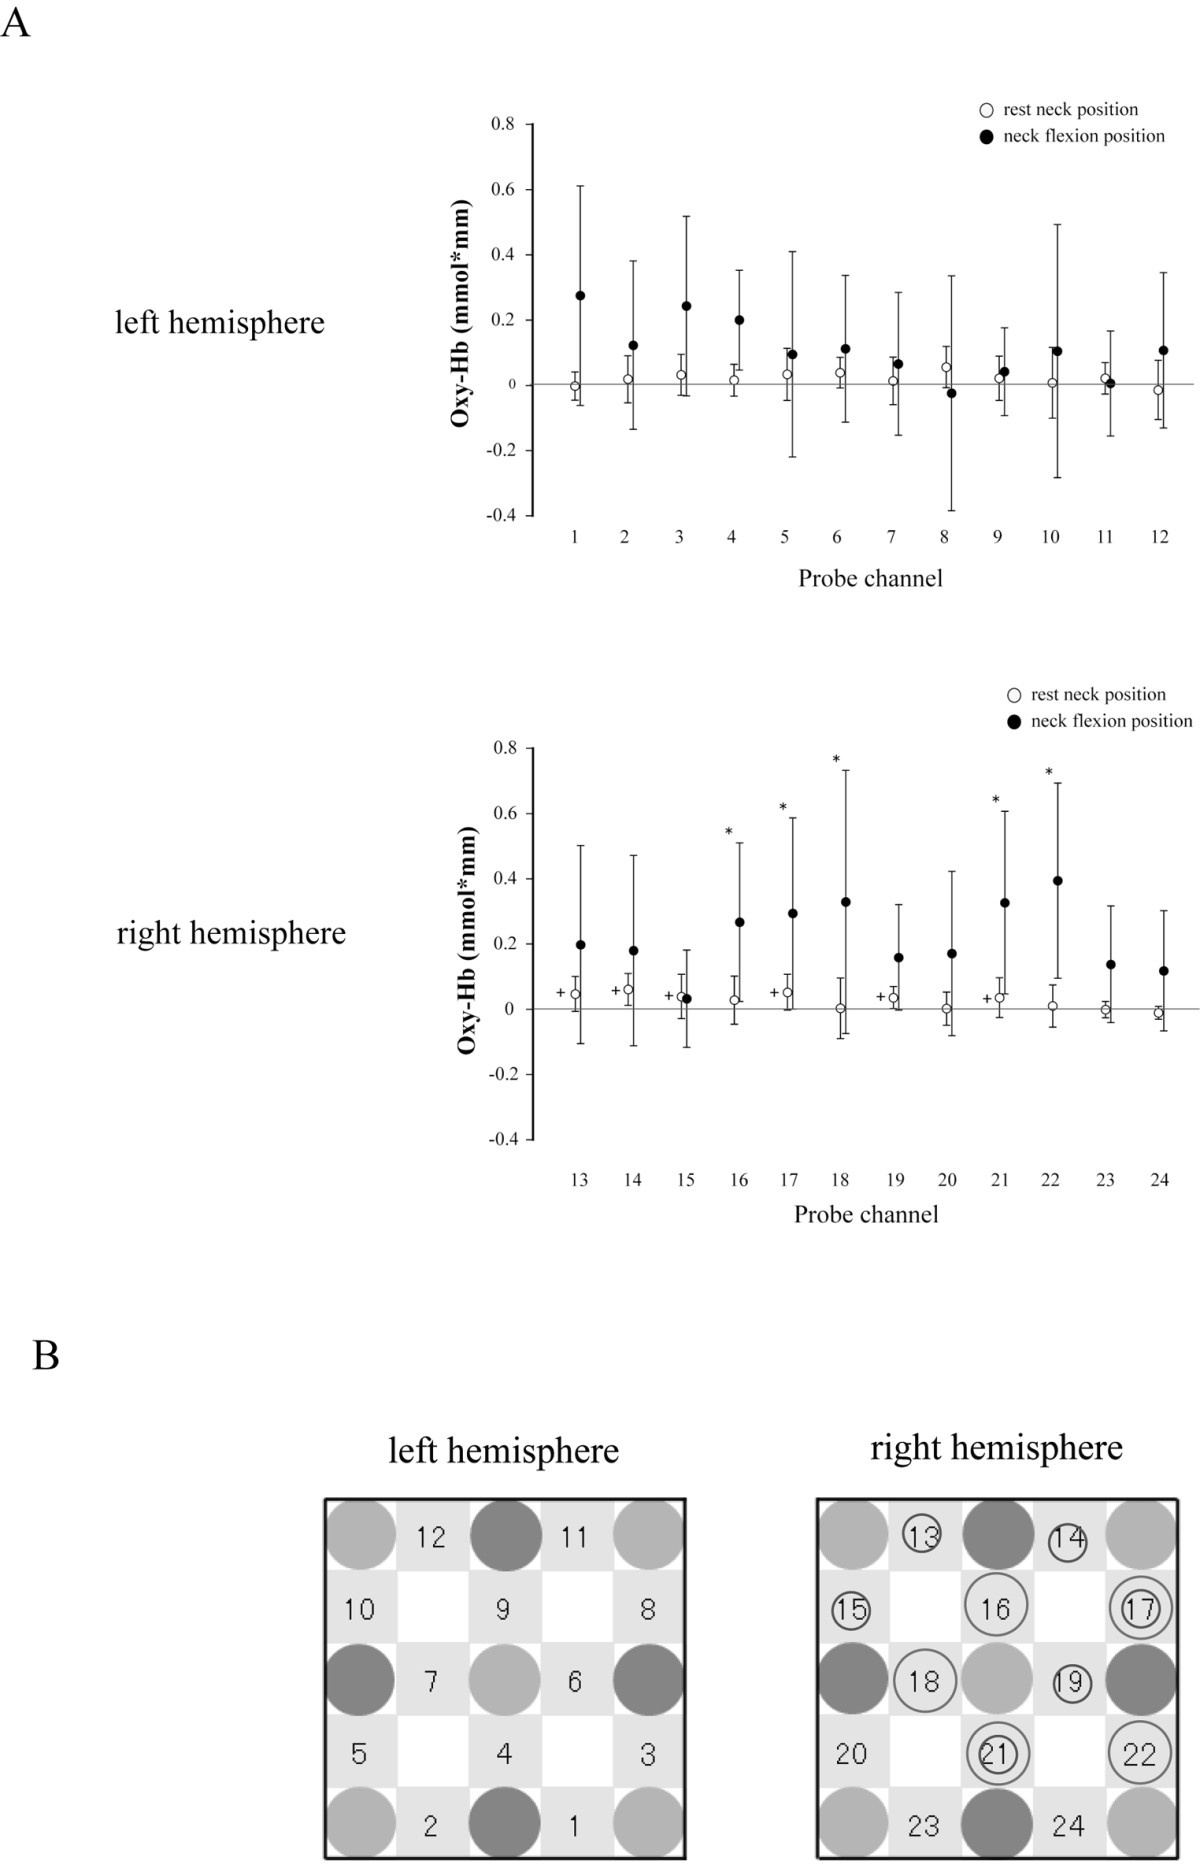 http://static-content.springer.com/image/art%3A10.1186%2F1880-6805-31-31/MediaObjects/40101_2012_Article_29_Fig8_HTML.jpg